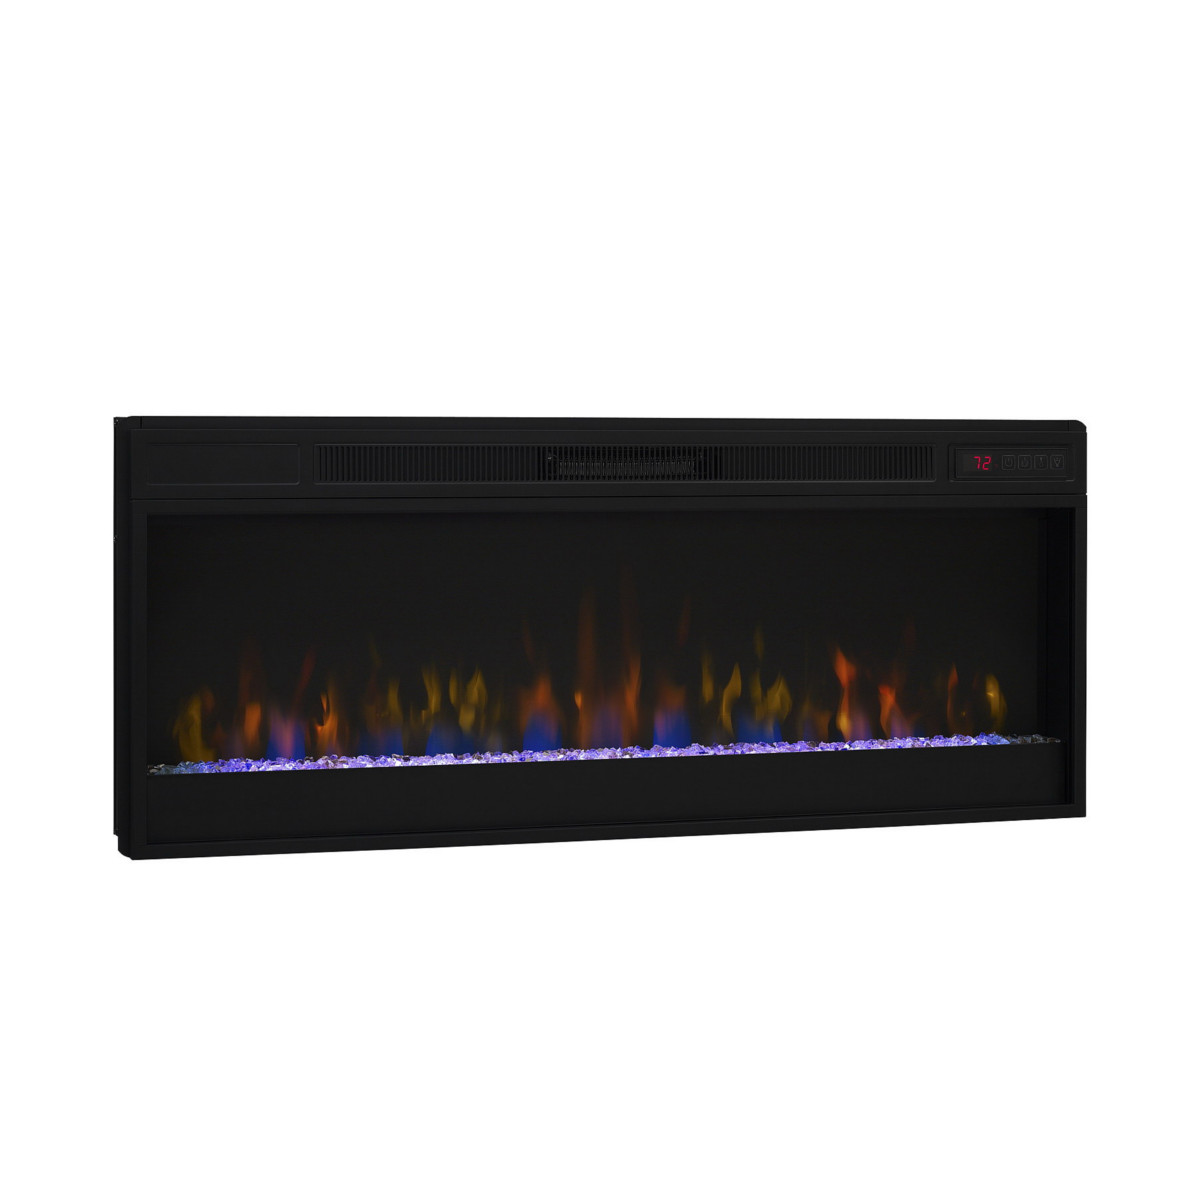 "Classic Flame 42II033FGT 42"" Quartz Infrared Fireplace ..."